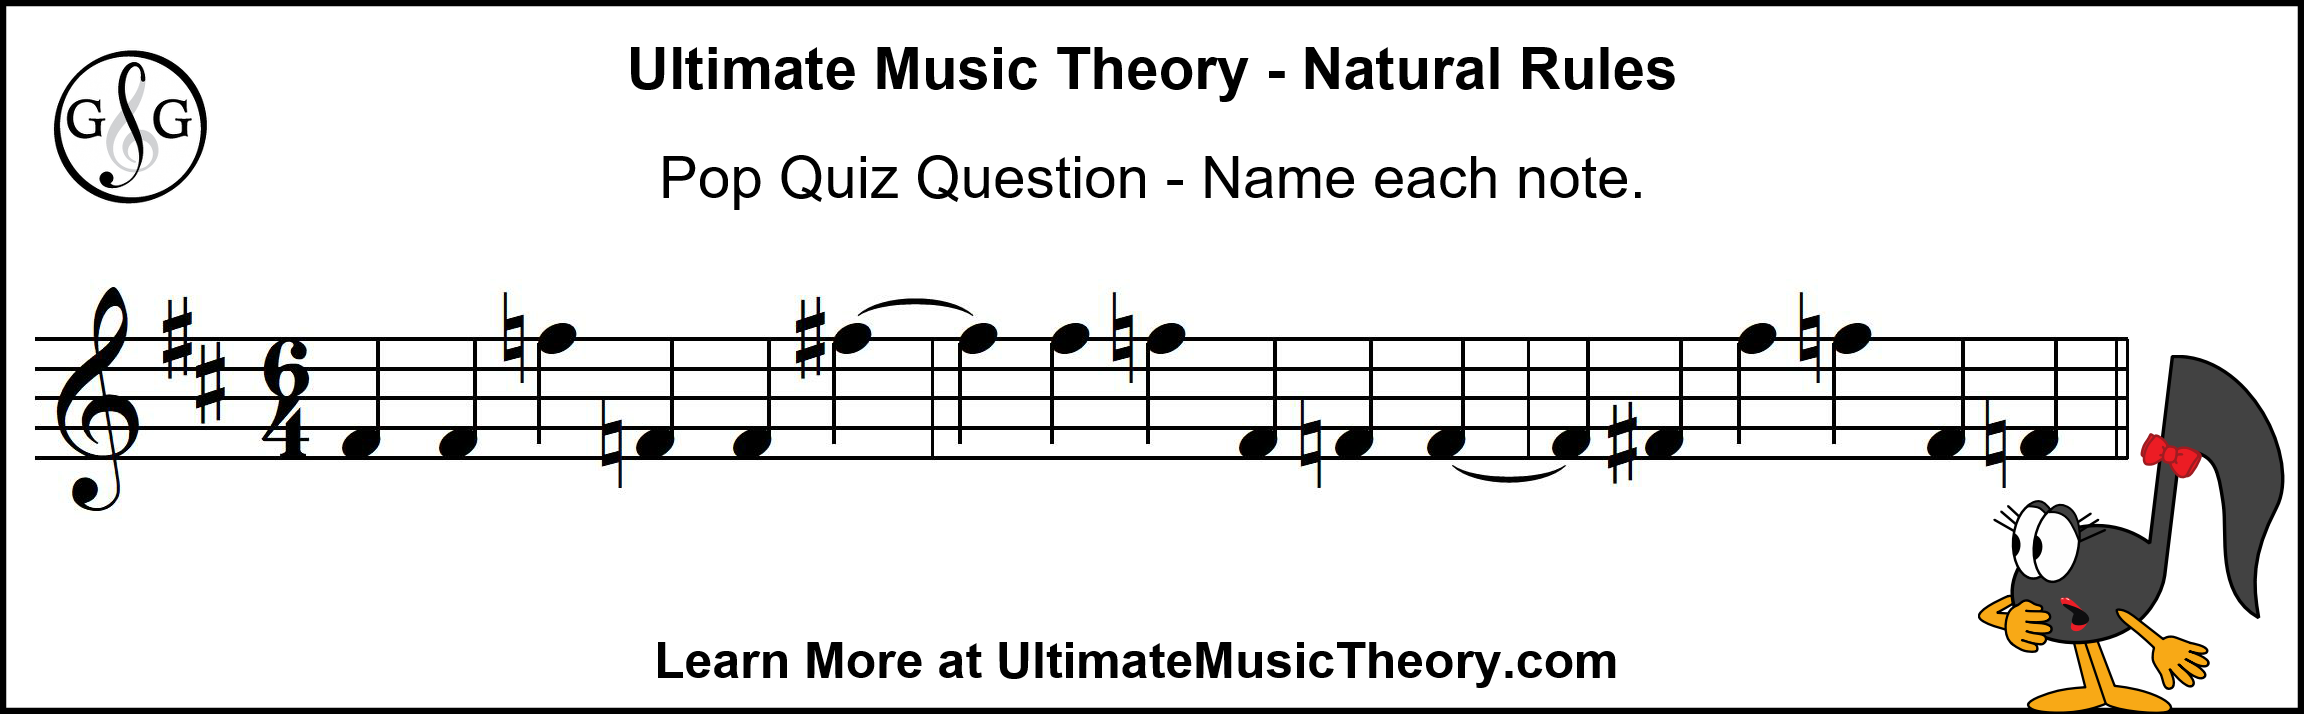 Ultimate Music Theory Natural Rules - Pop Quiz